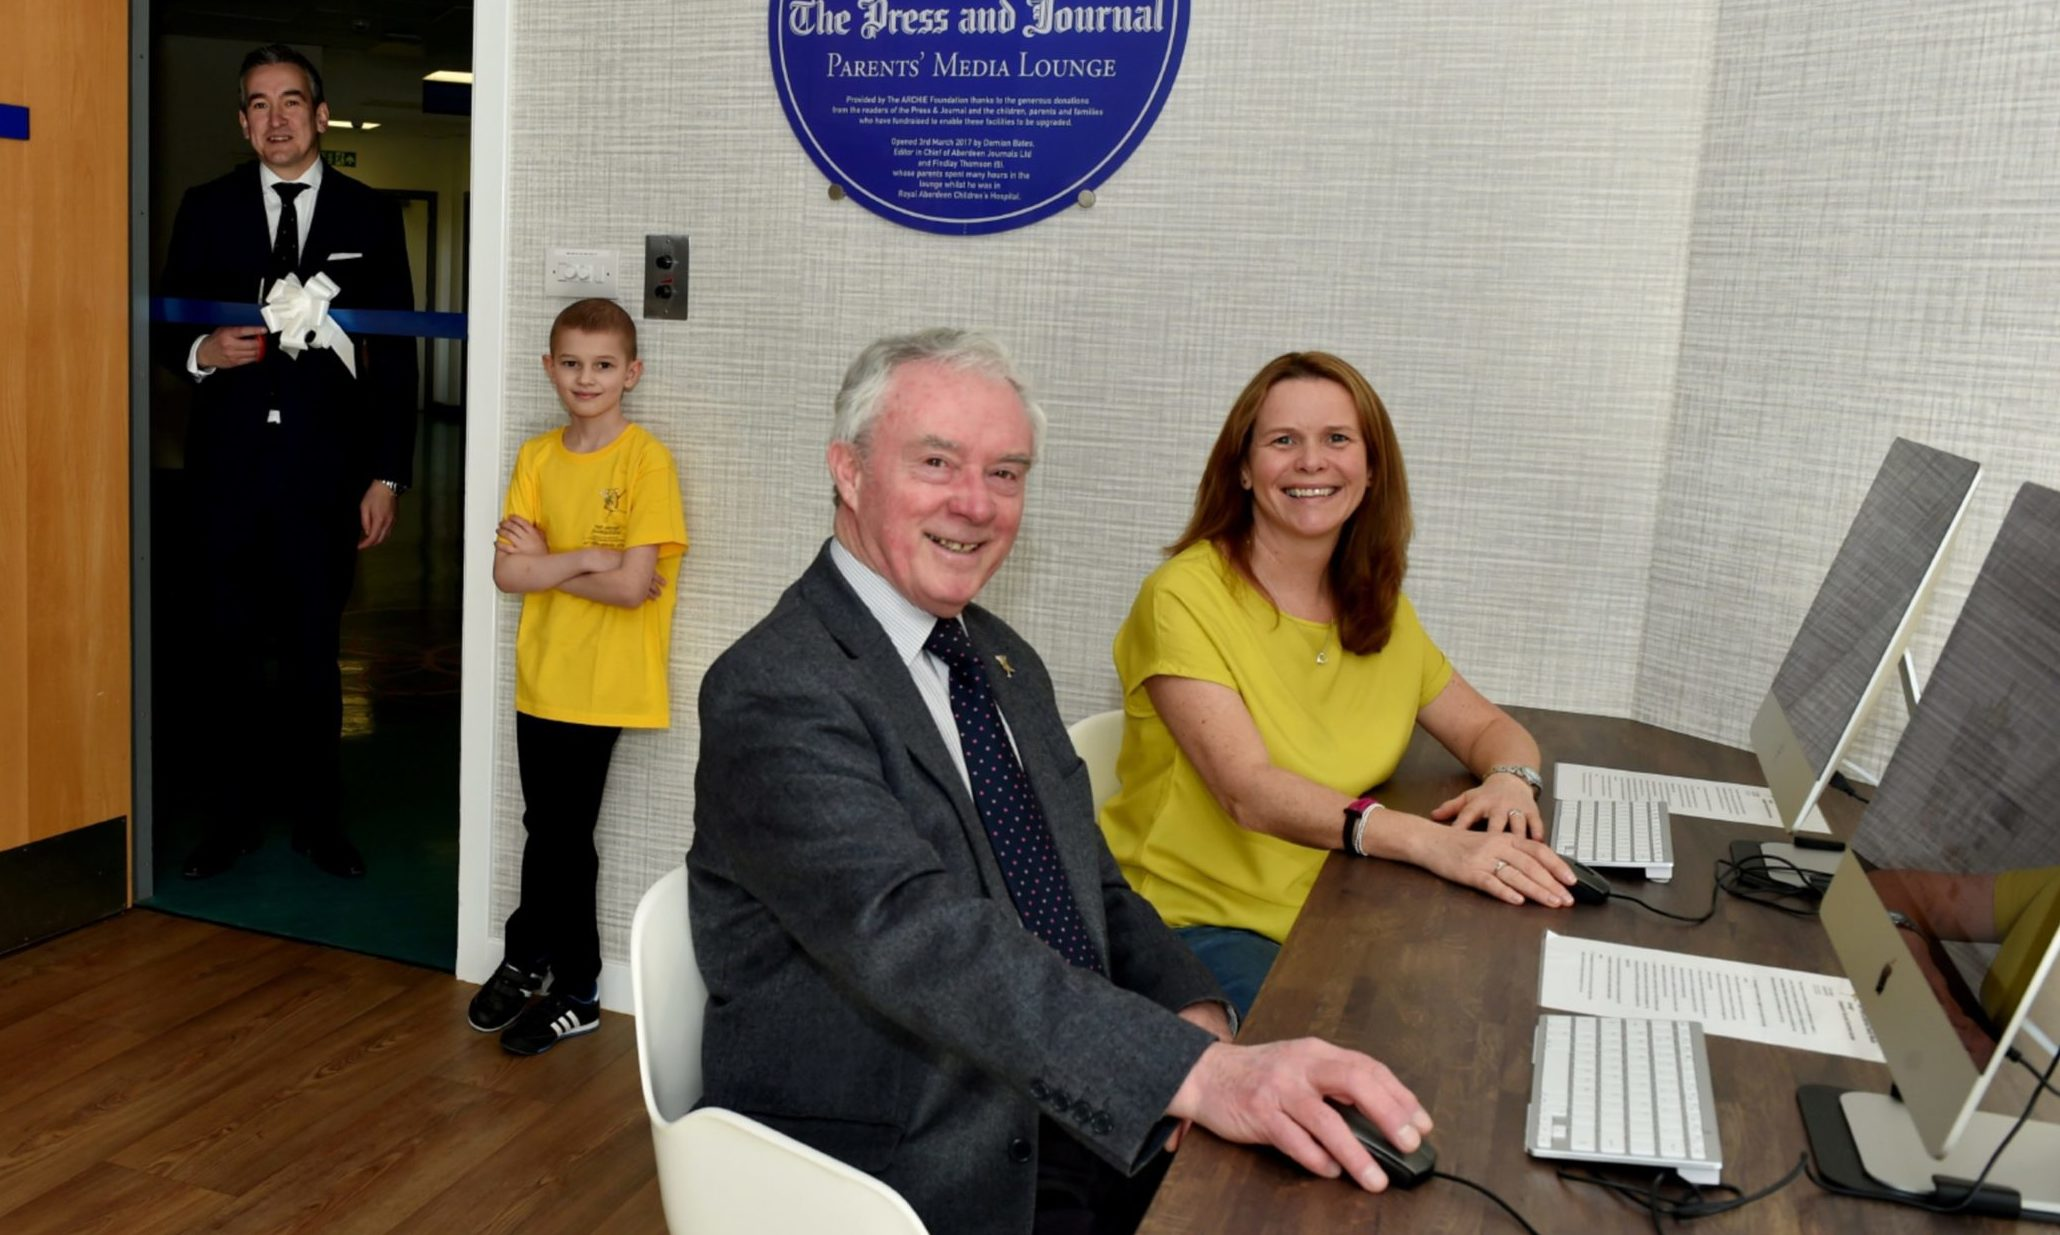 The Press & Journal Media Lounge was officially opened by editor-in-chief Damian Bates, pictured with nine-year-old Finlay Thompson, mum Tracy and Joe Mackie.